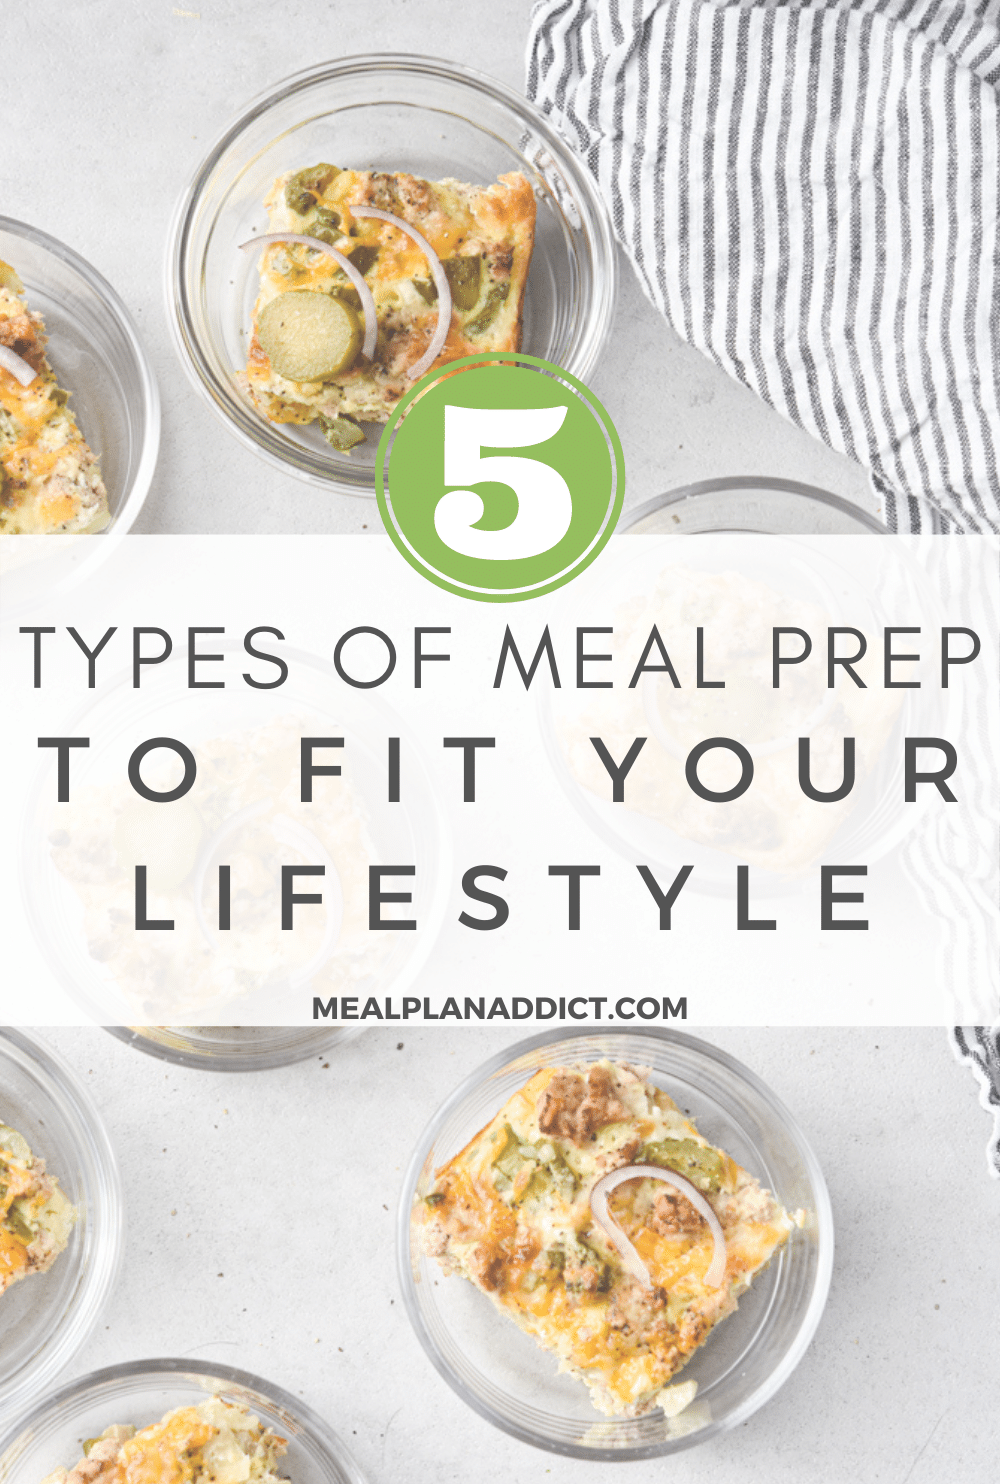 5 Types of Meal prep To Fit Your Lifestyle | Meal Plan Addict